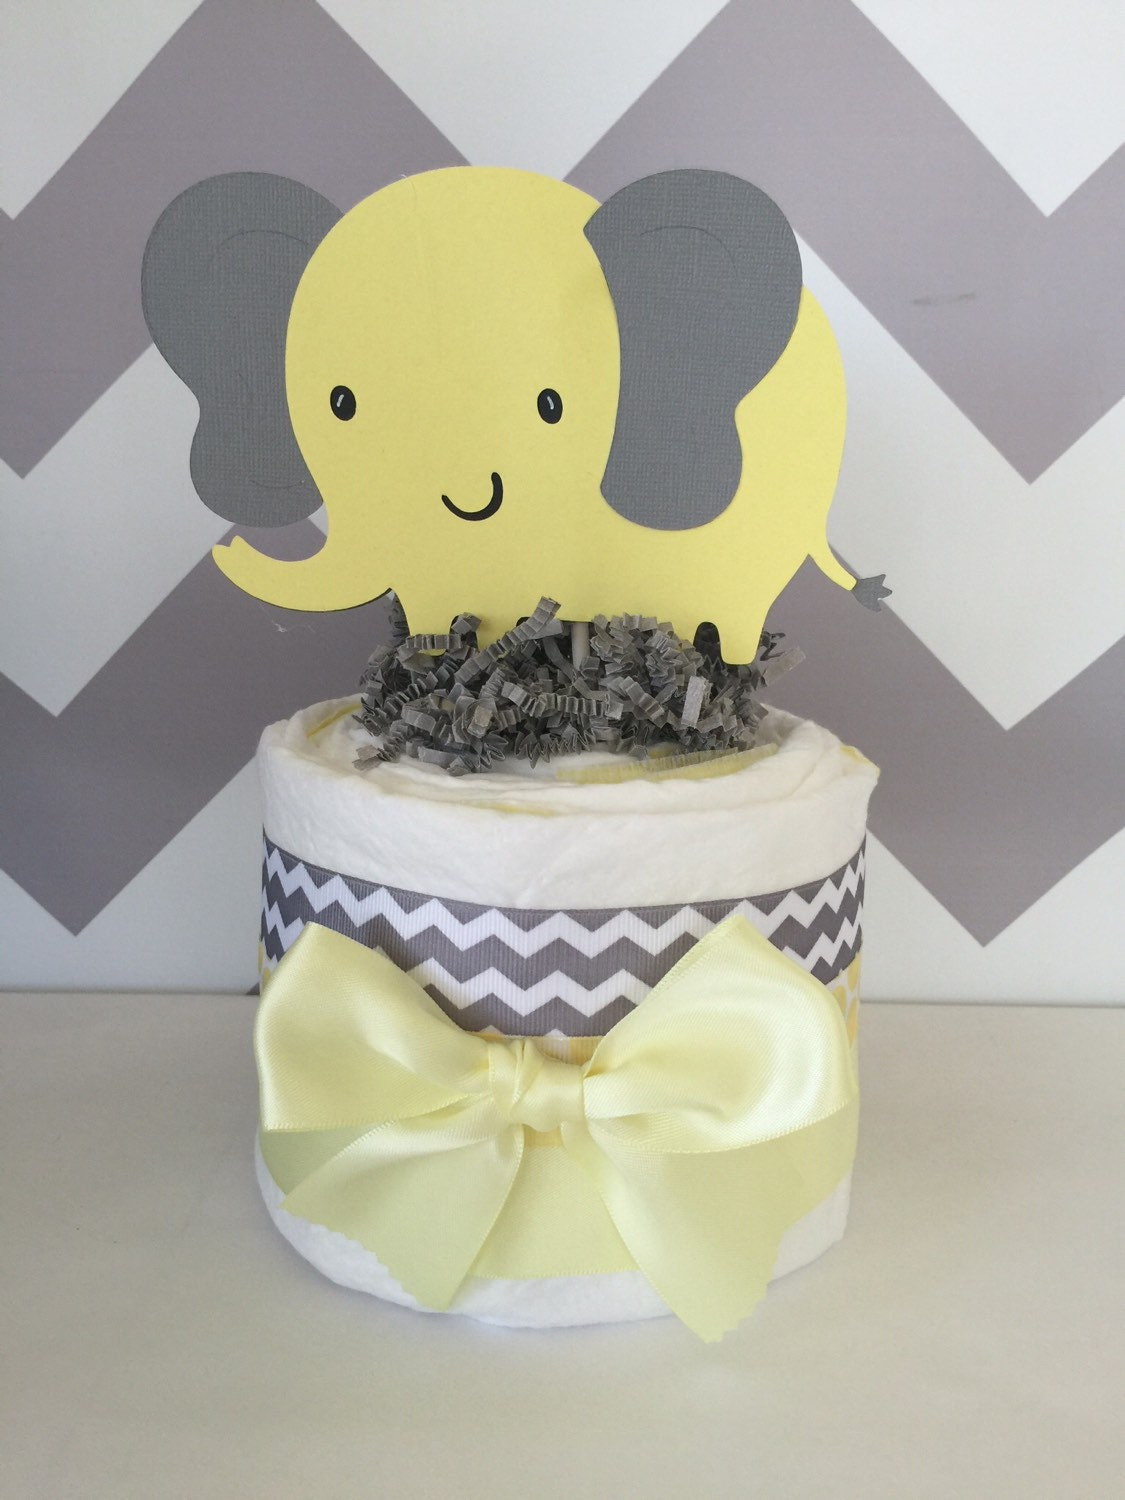 Marvelous Mini Elephant Theme Baby Shower Diaper Cake In Gray And Yellow, Chevron  Gray And Yellow Elephant Baby Shower Centerpiece